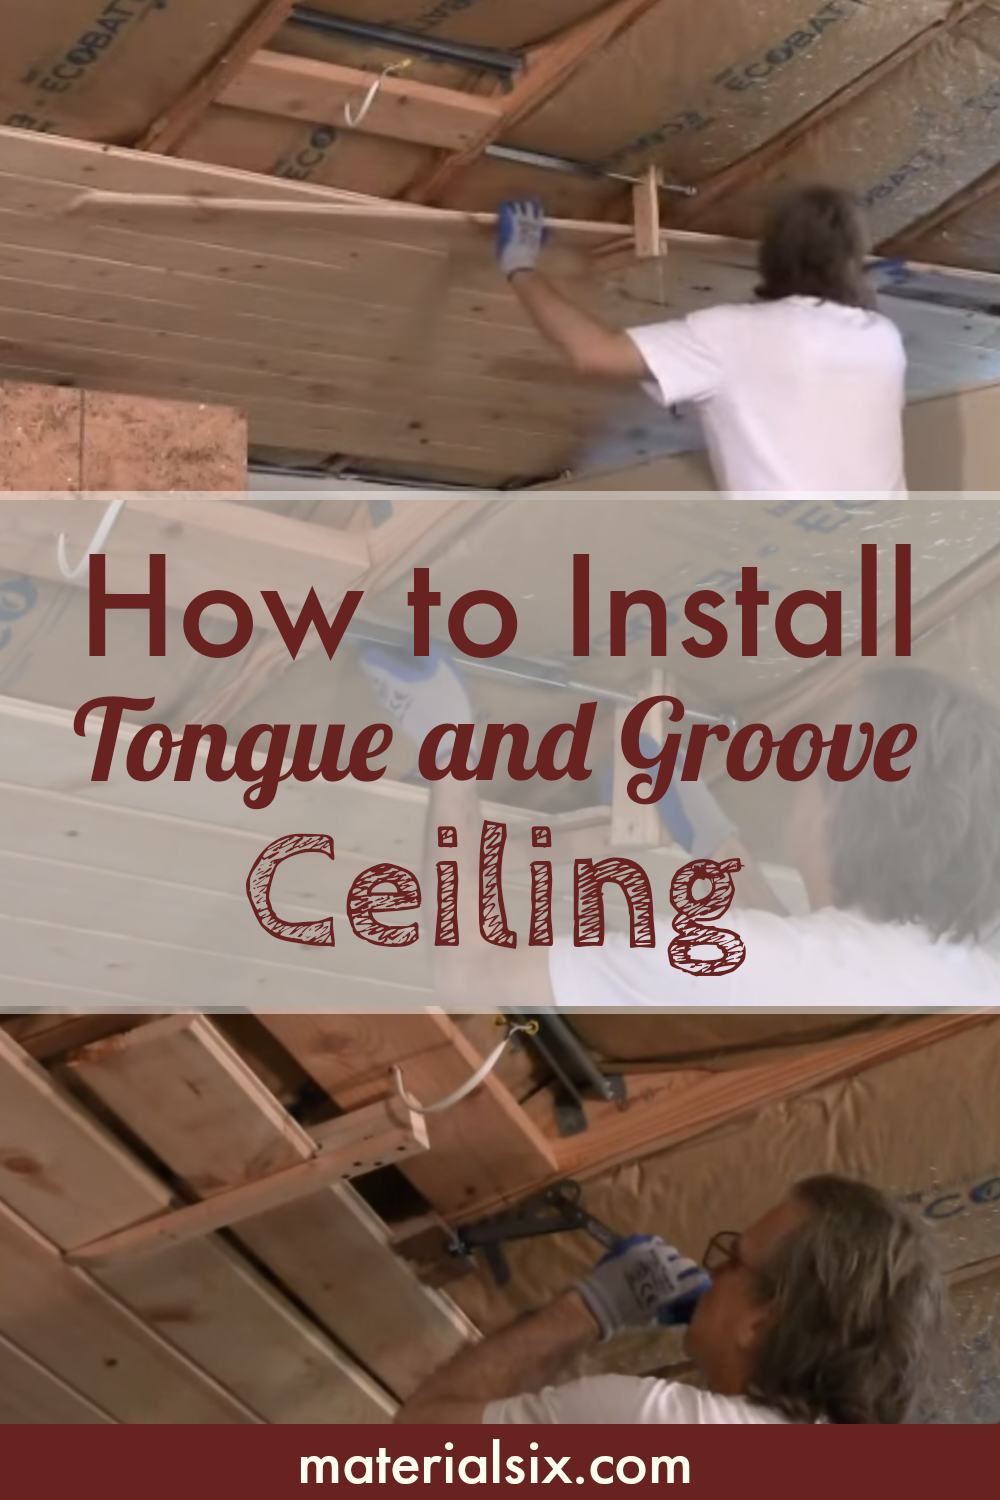 How To Install Tongue And Groove Ceiling Materialsix Com Tongue And Groove Ceiling Tongue And Groove Groove